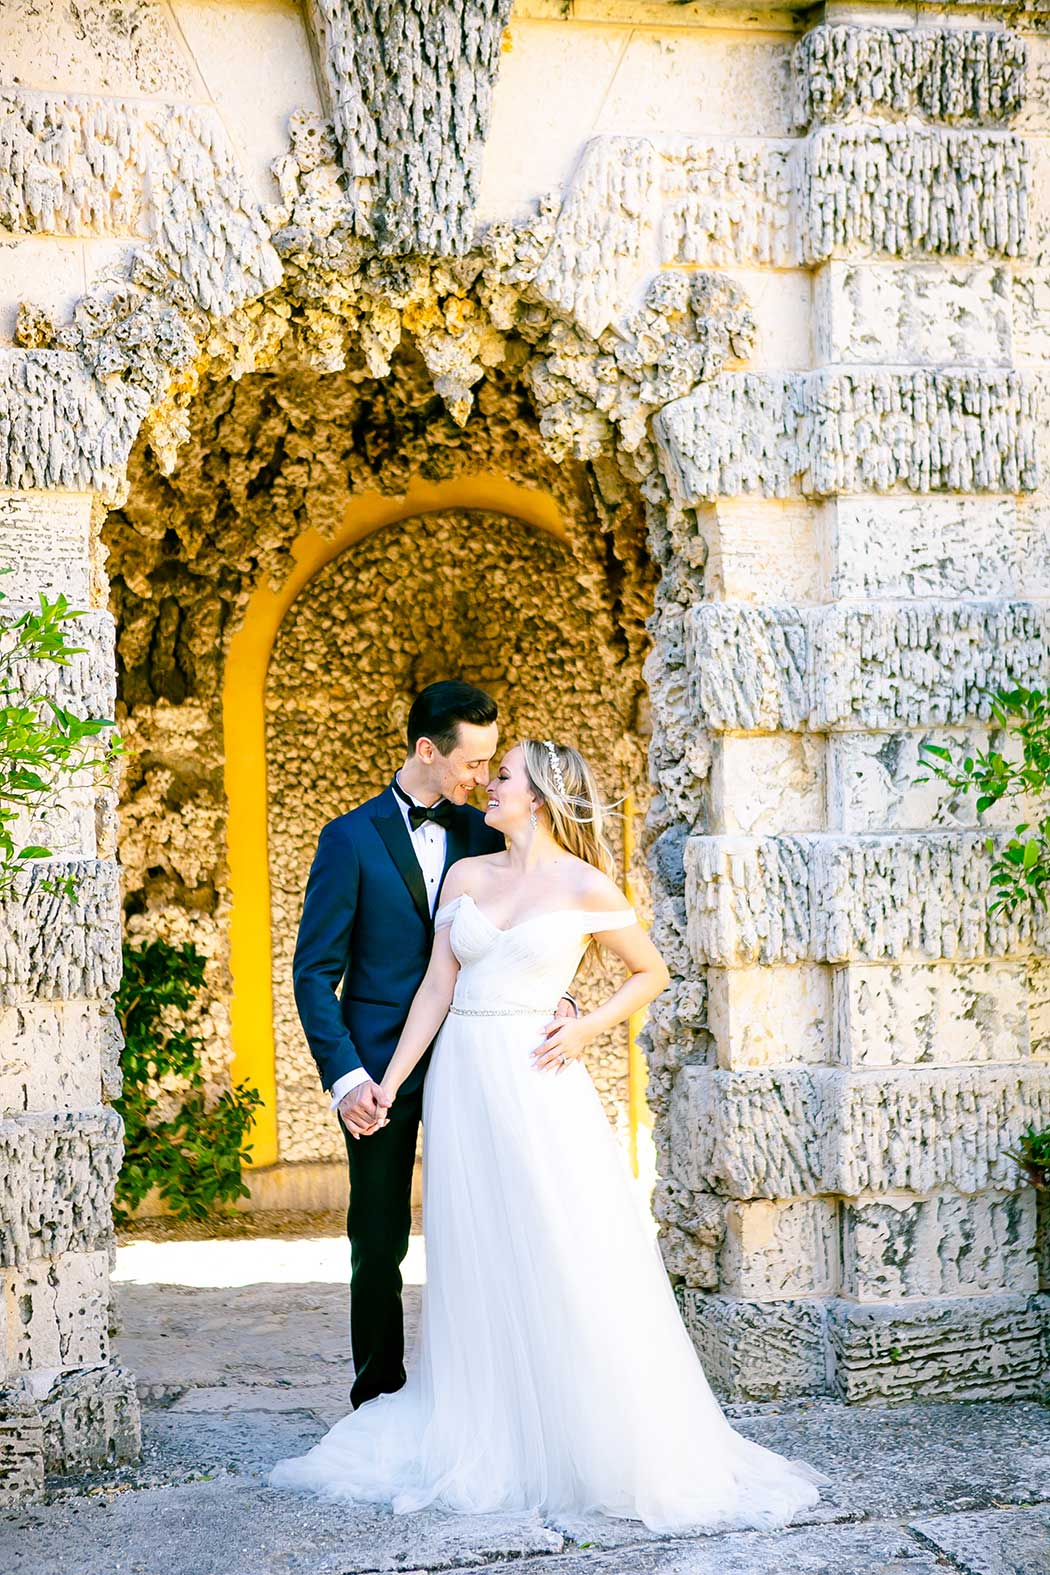 romantic couples photoshoot at vizcaya | gorgeous engagement photography vizcaya museum